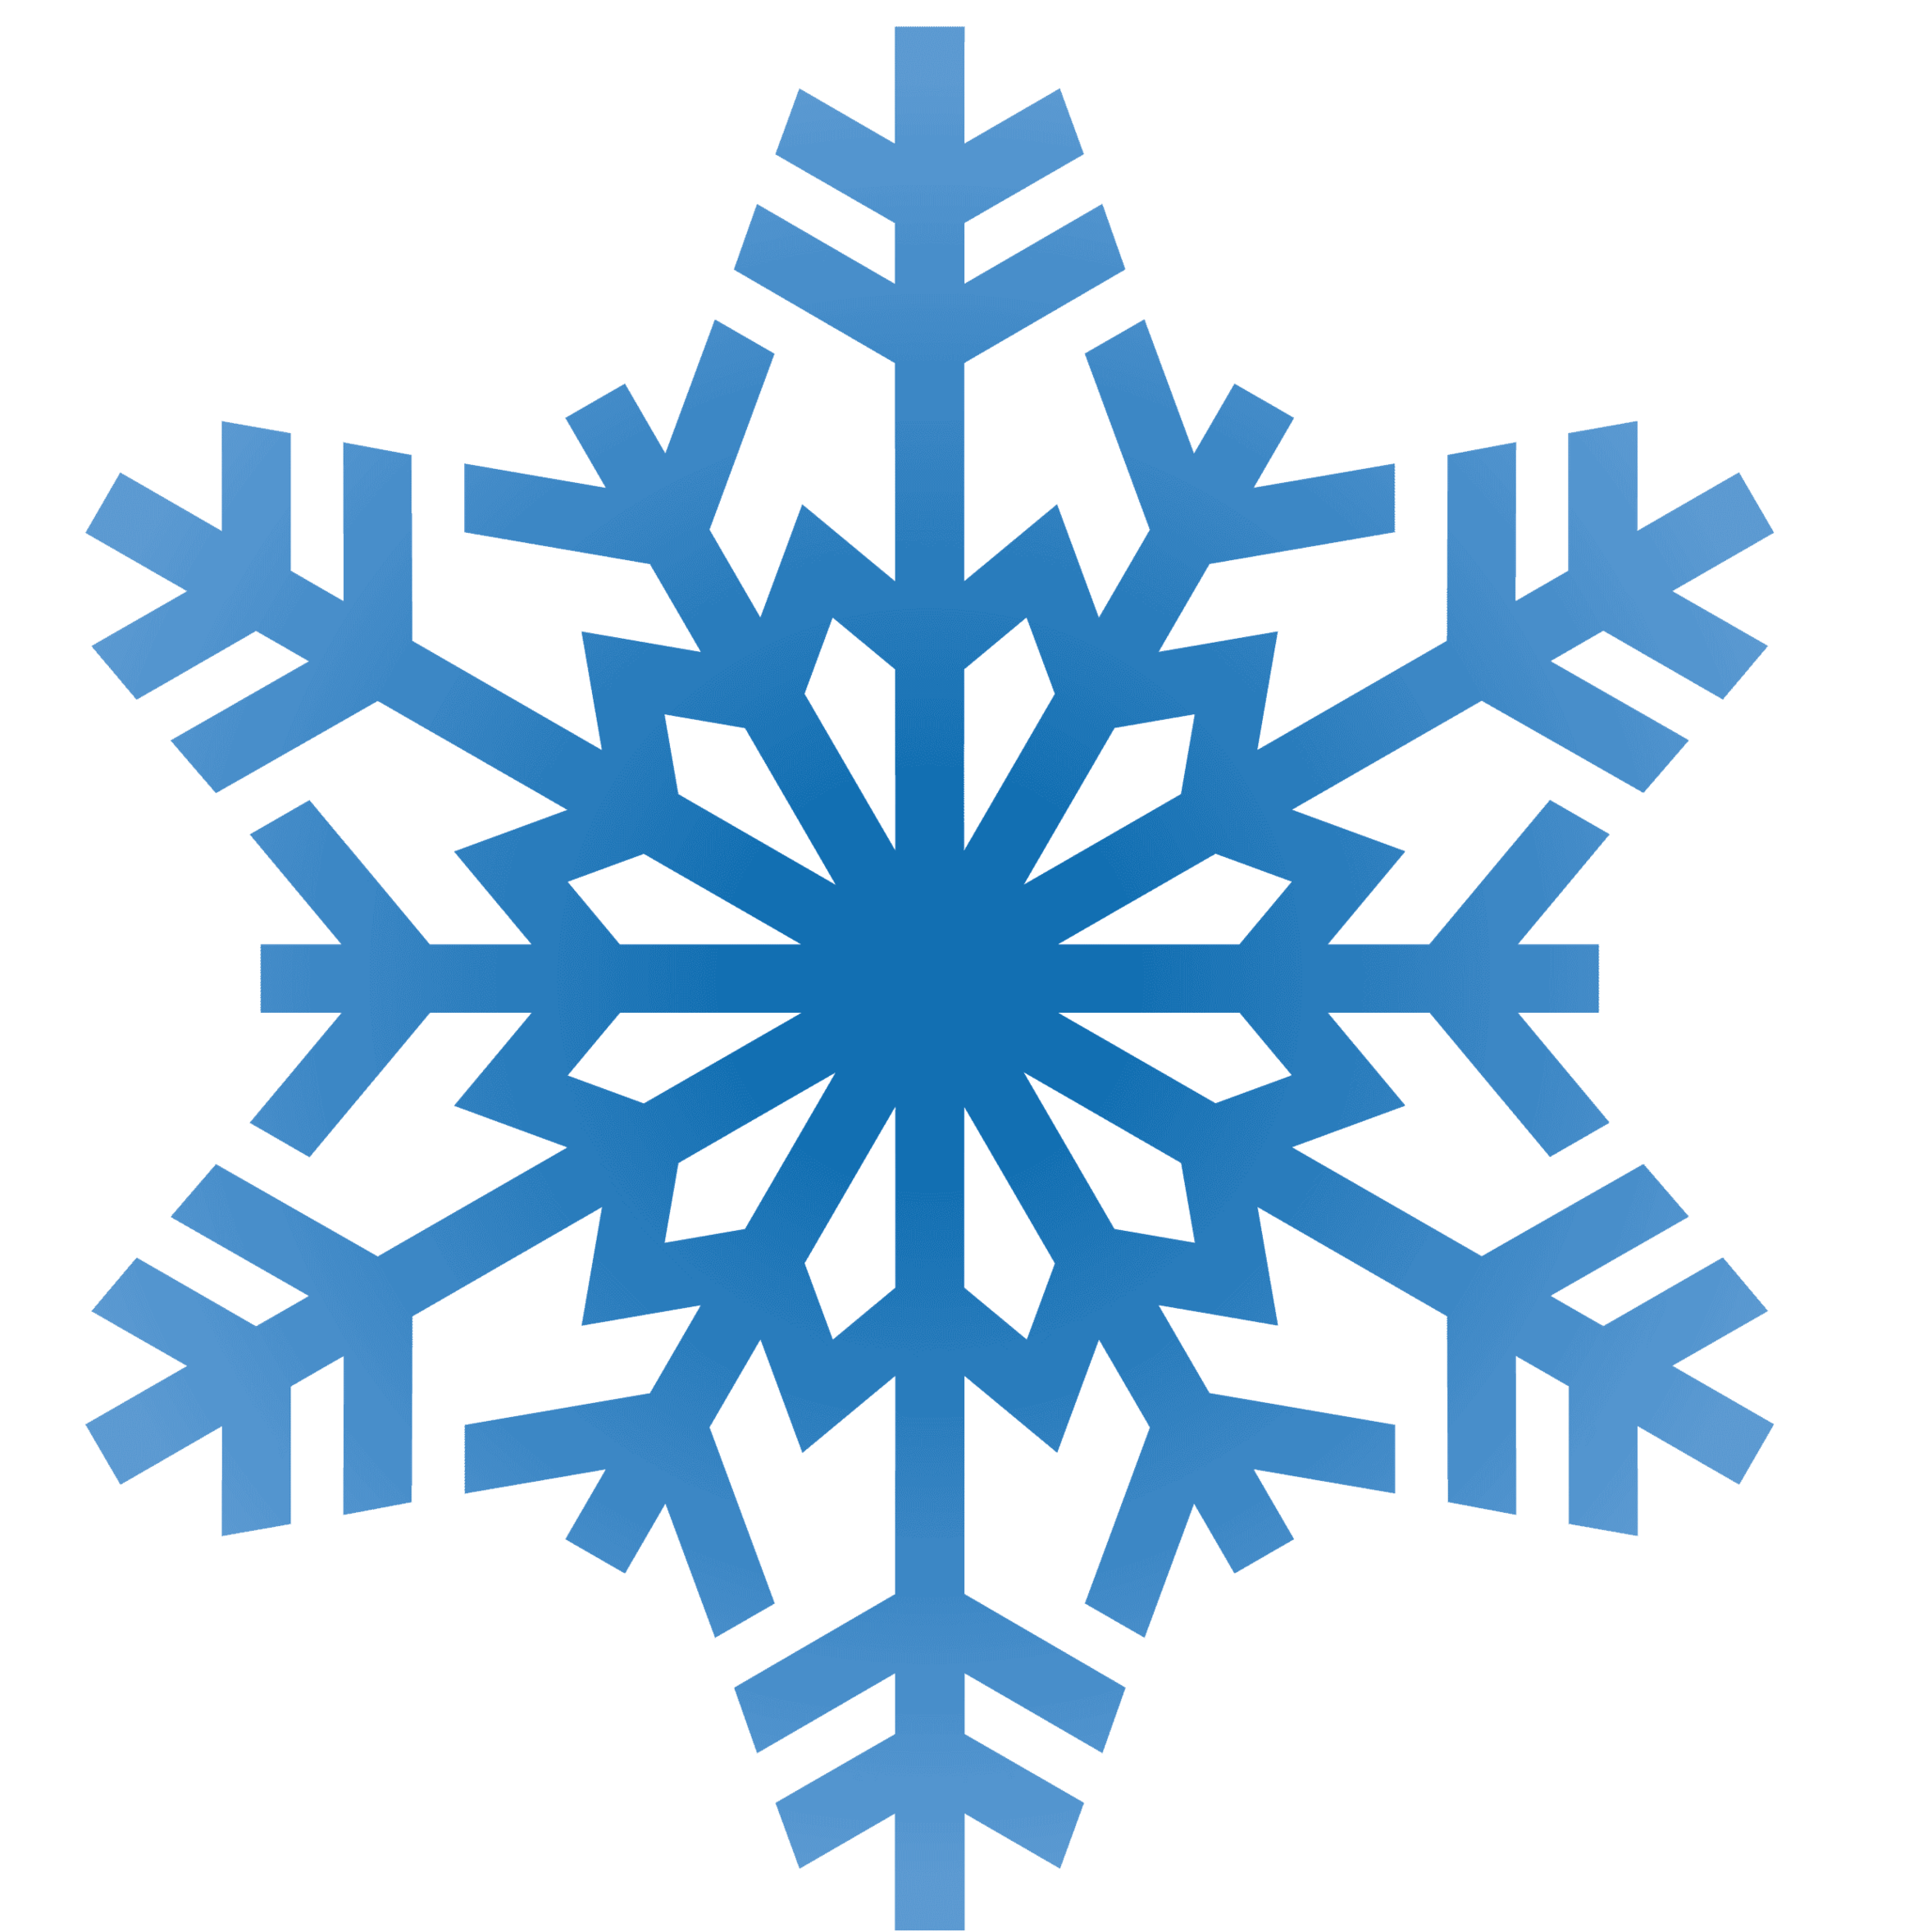 Pattern clipart winter. Free snowflakes cliparts download